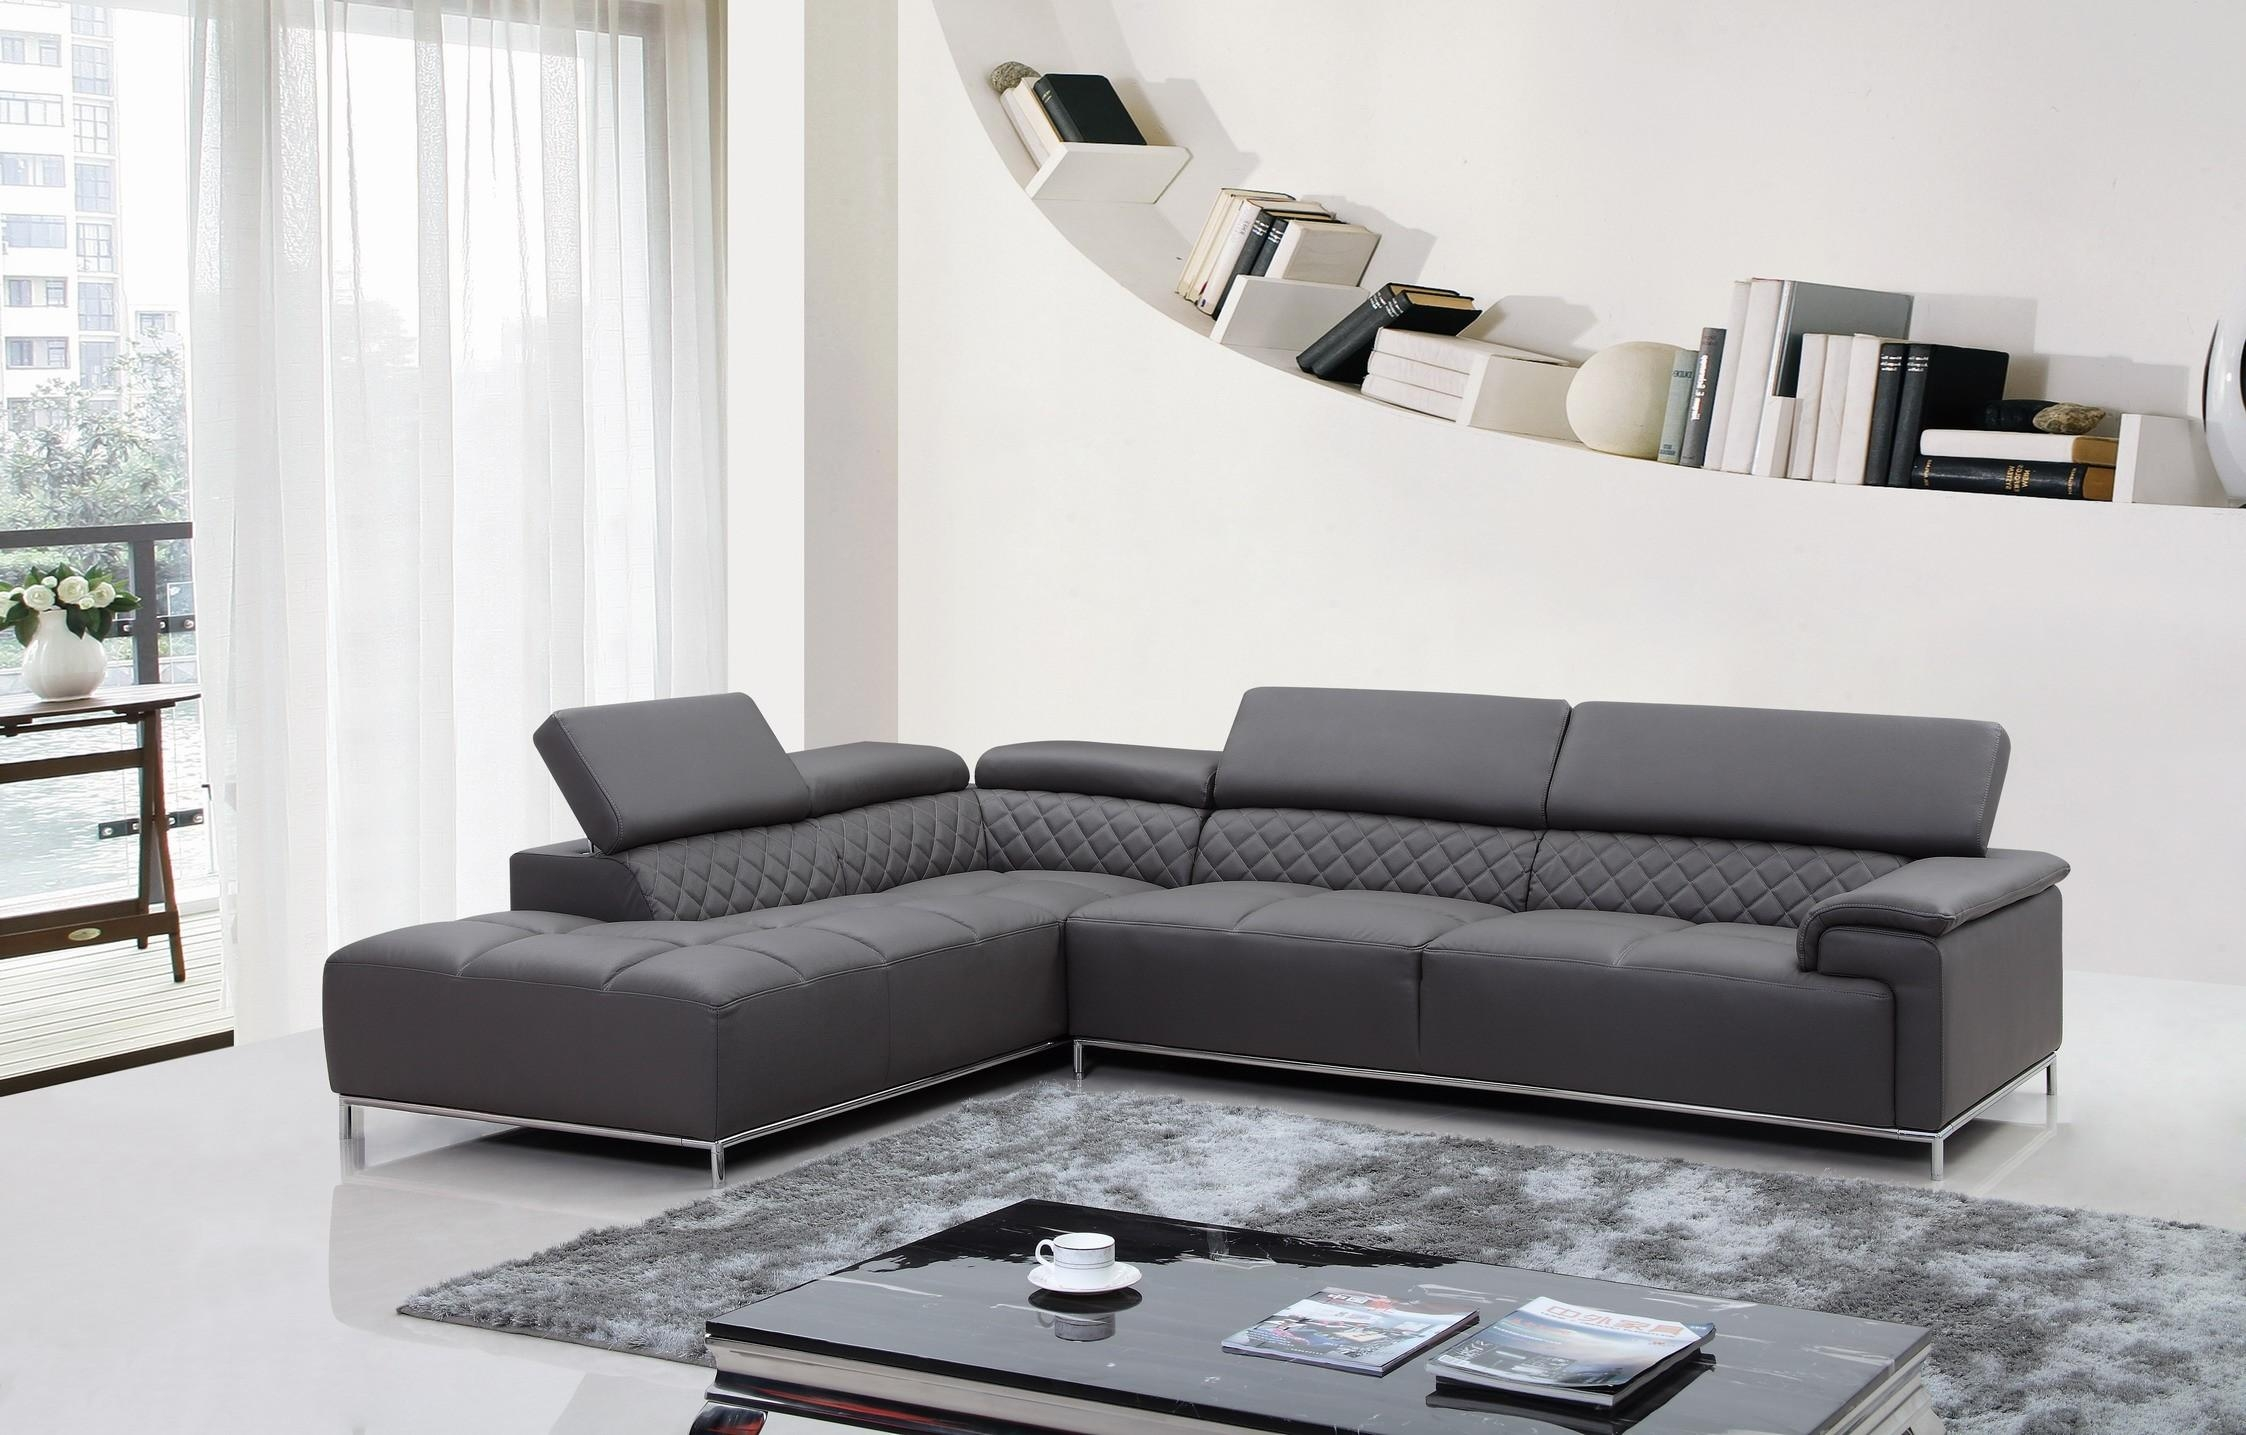 Sofas : Awesome Contemporary Leather Sofa Navy Blue Sectional Within Modern Sofas Sectionals (View 18 of 21)